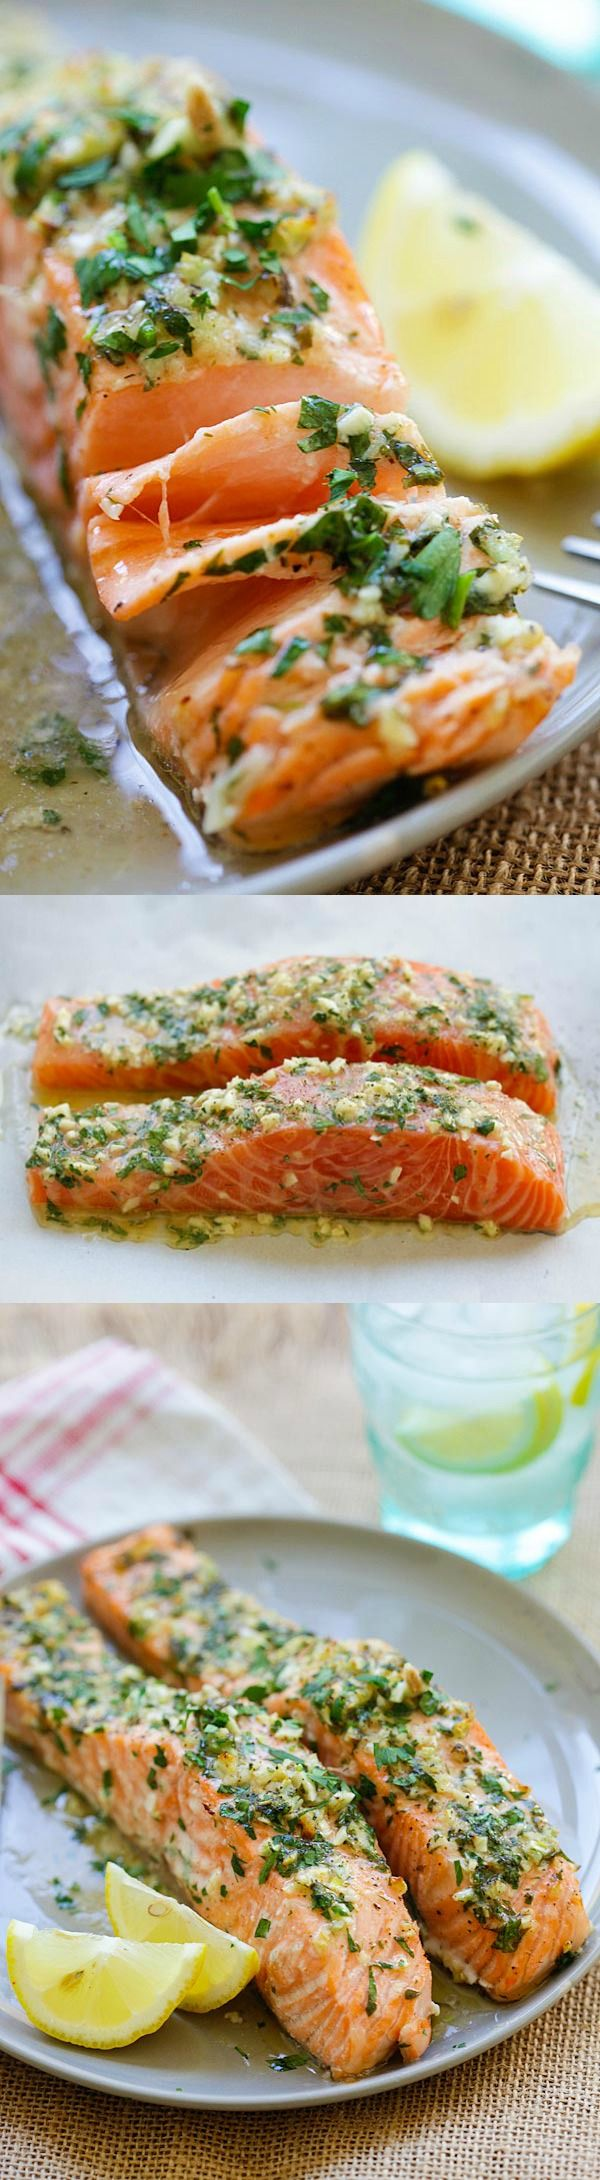 Garlic Herb Roasted Salmon – best roasted salmon recipe ever! Made with butter, garlic, herb, lemon and dinner is ready in 20 mins   rasamalaysia.com